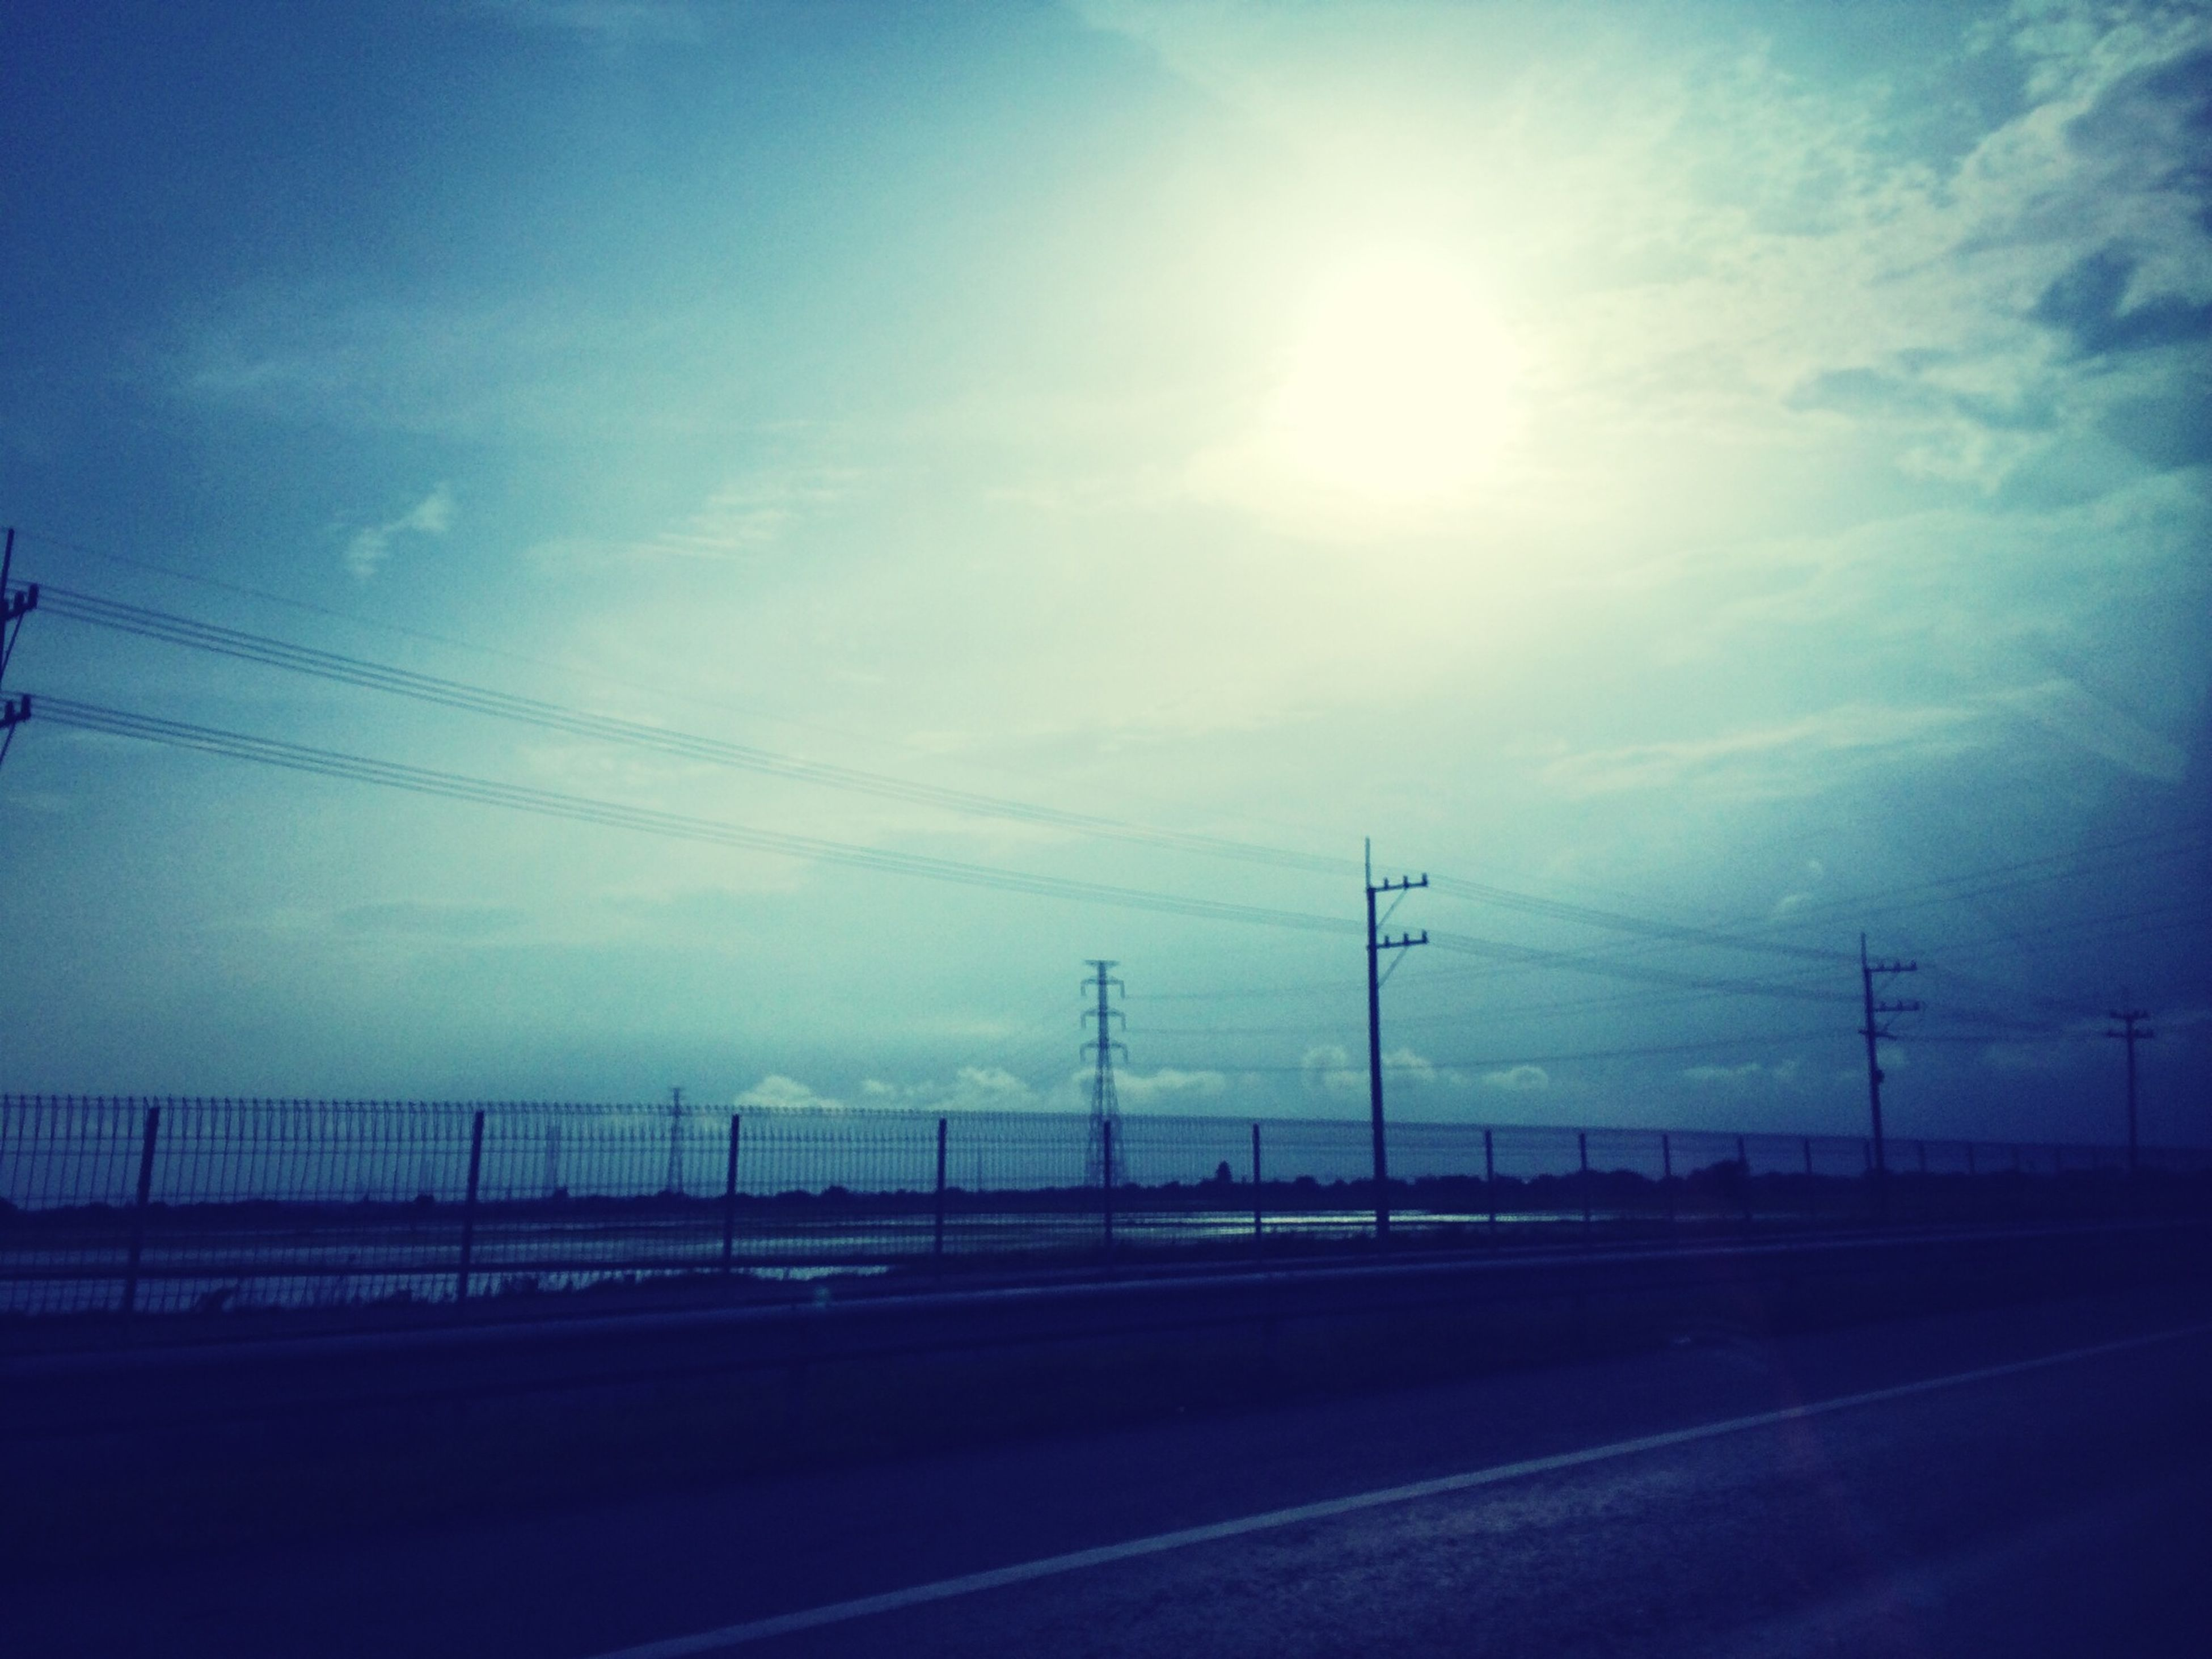 electricity pylon, power line, connection, sky, electricity, power supply, transportation, fuel and power generation, road, cable, sun, cloud - sky, sunlight, landscape, tranquility, nature, sunbeam, silhouette, technology, tranquil scene